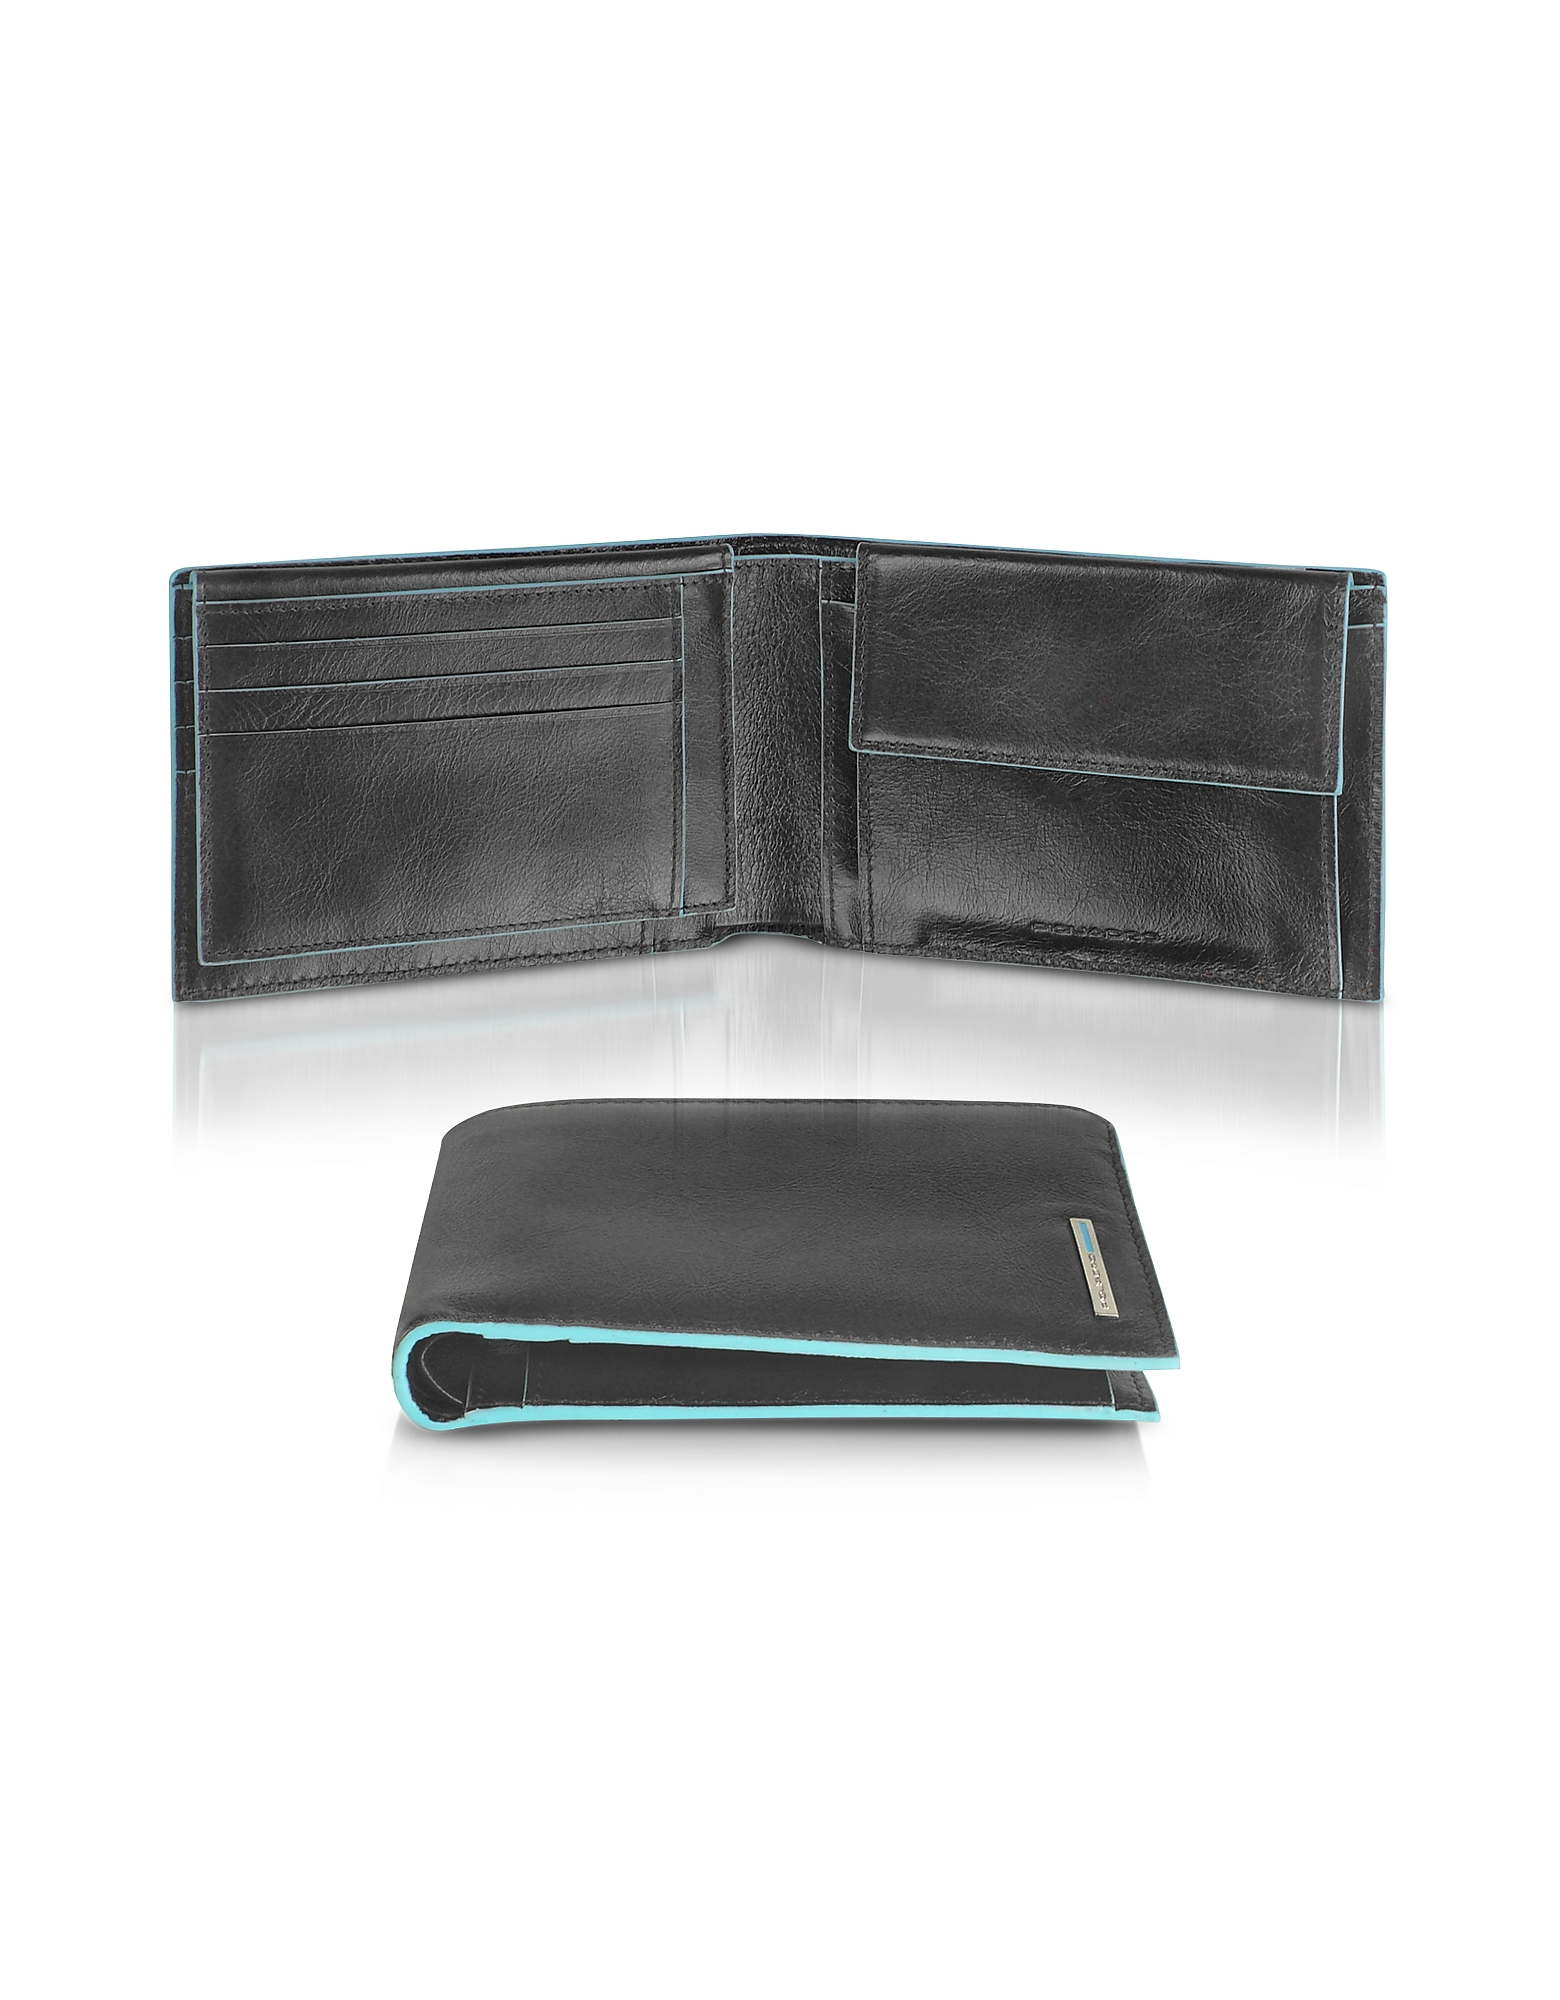 Piquadro Wallets, Blue Square - Men's Leather Card Holder & ID Wallet